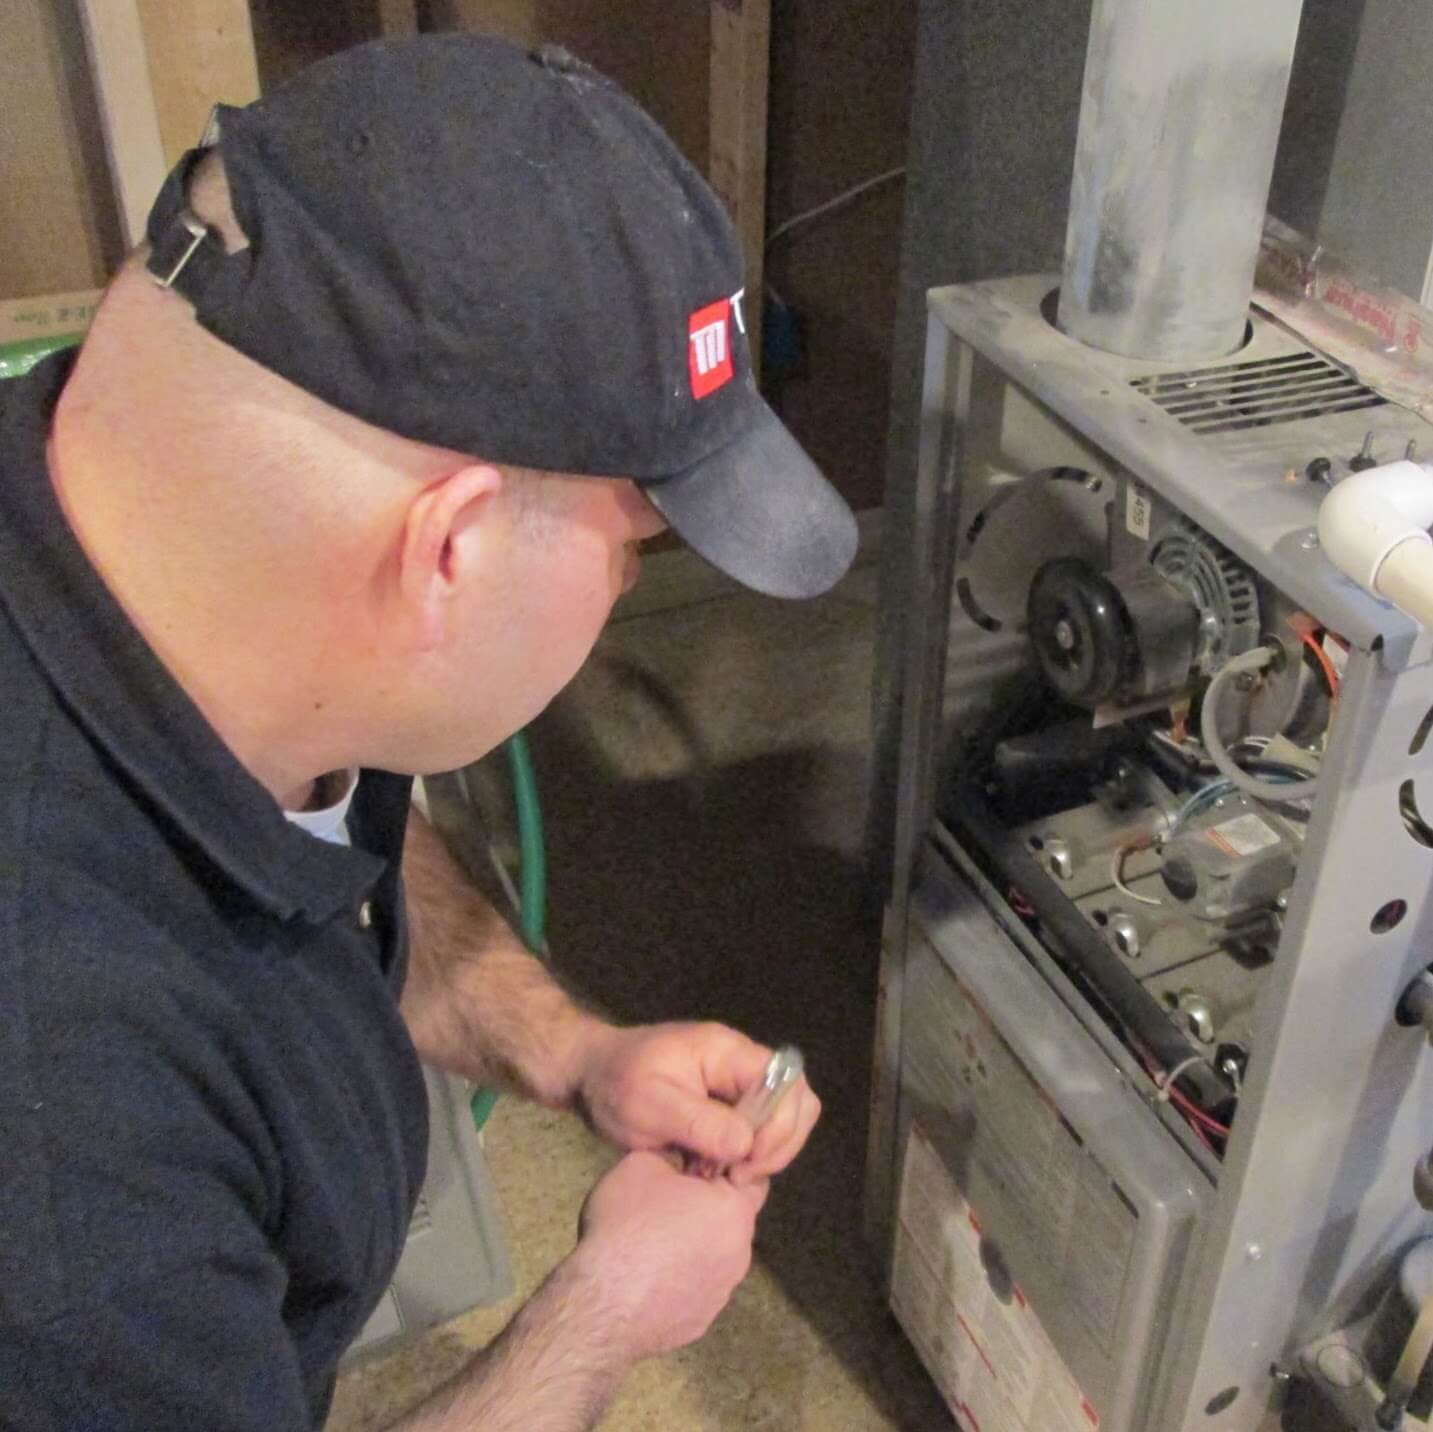 Home Inspector looking at a furnace